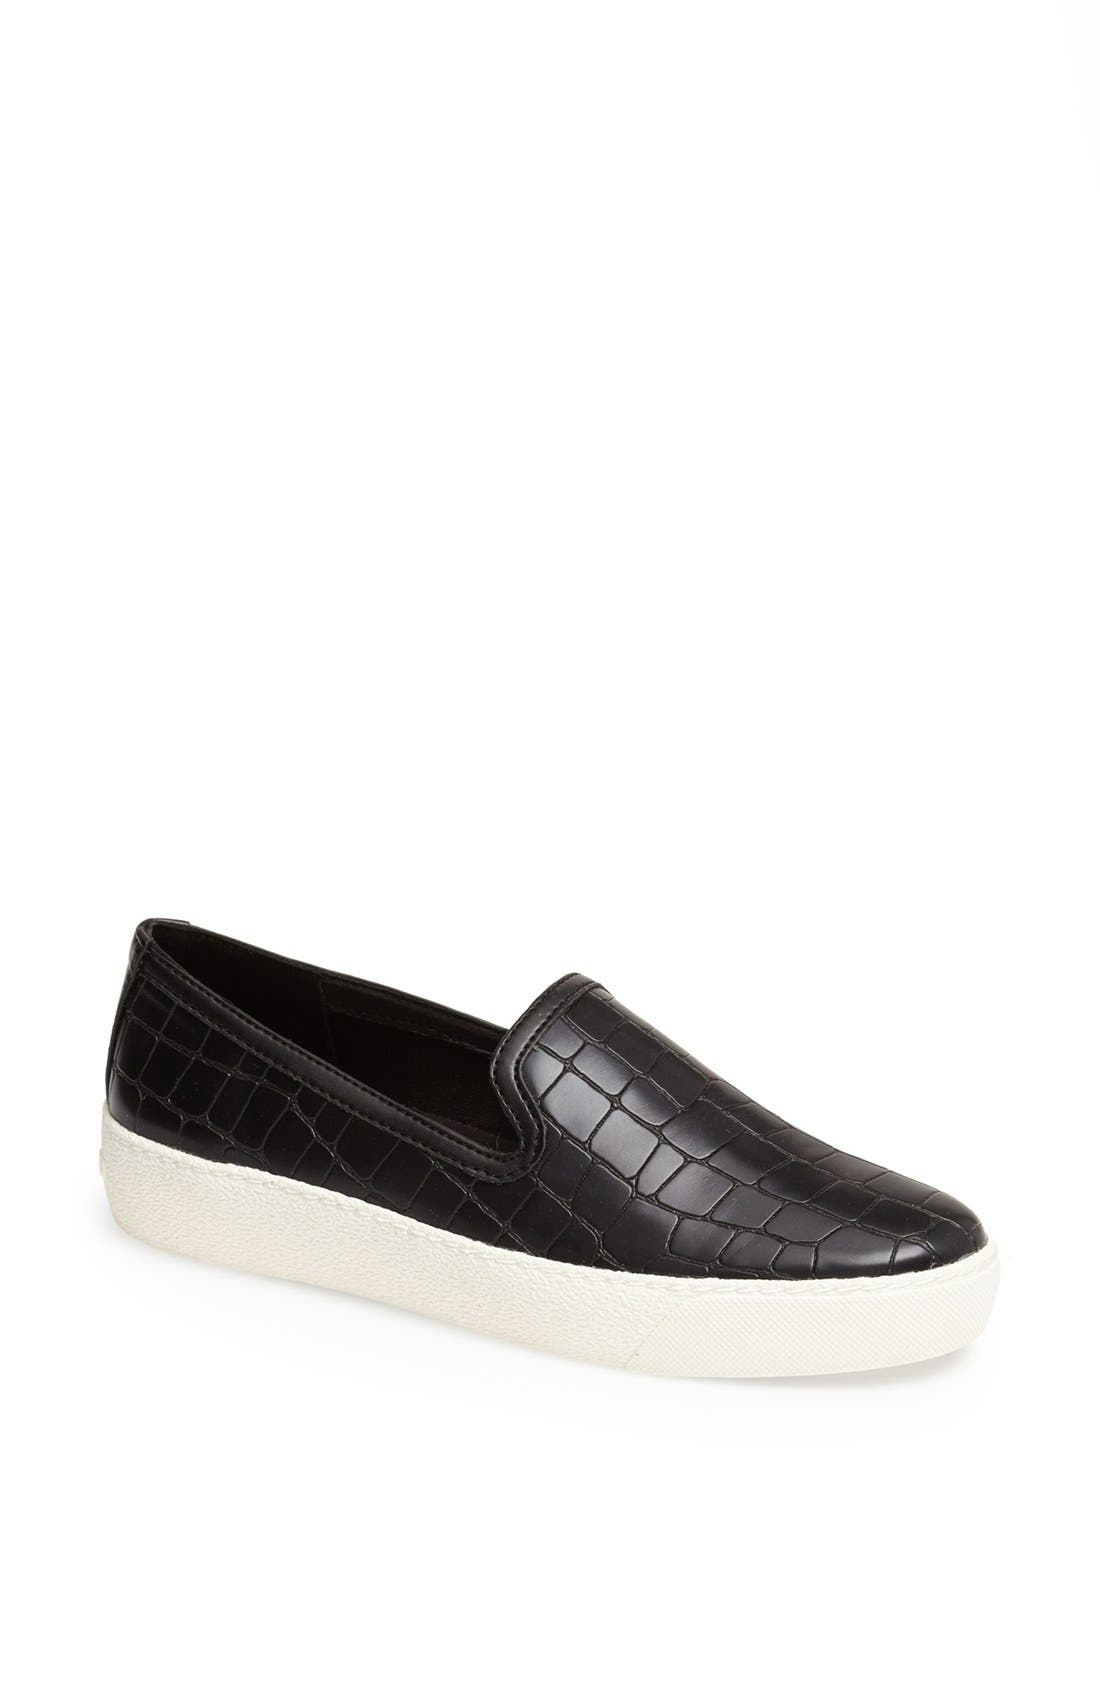 Main Image - Sam Edelman 'Becker' Slip On